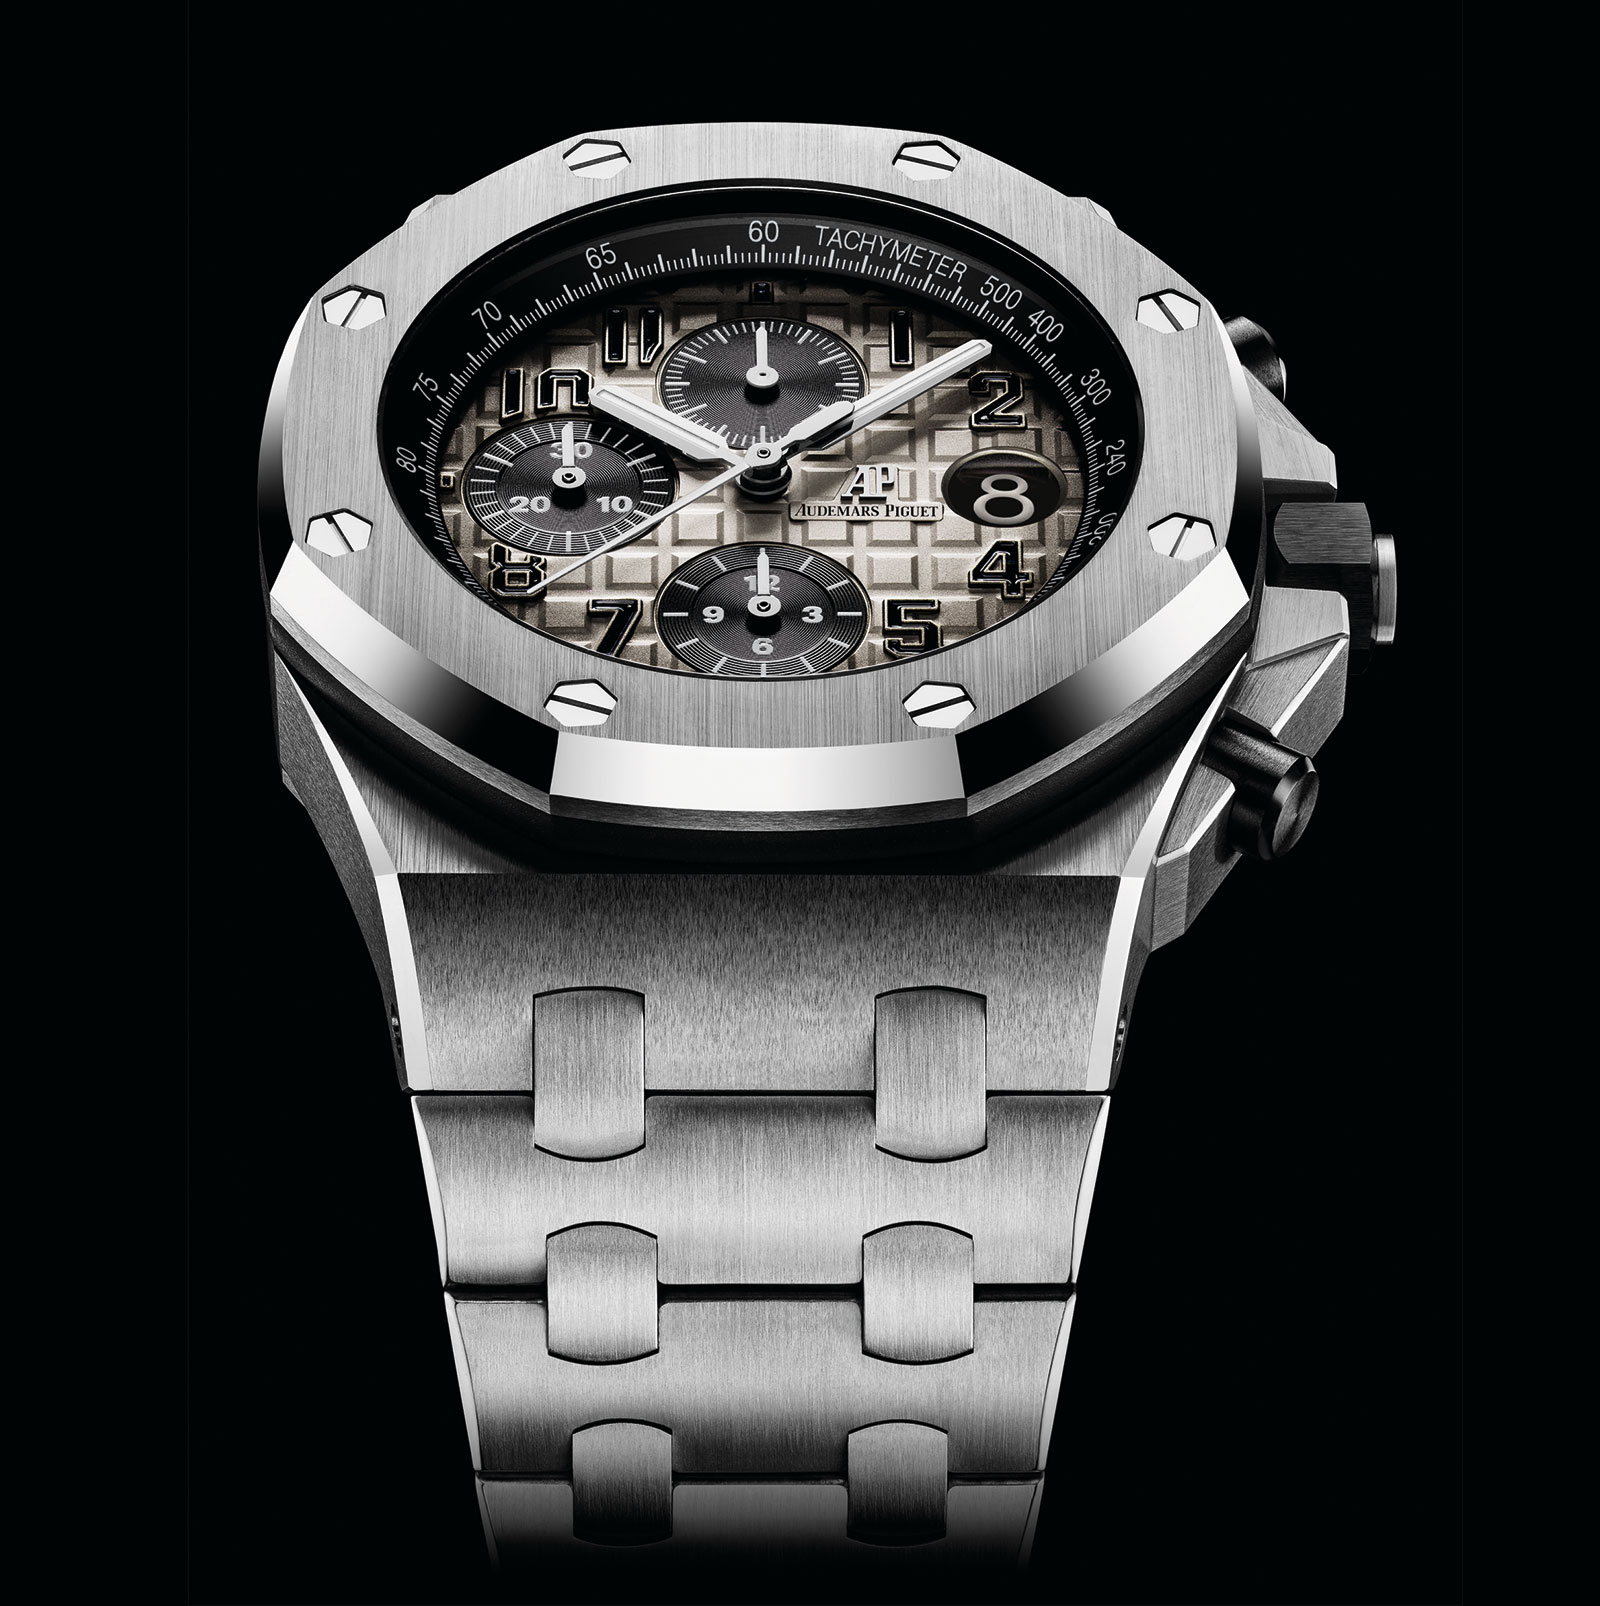 Audemars Piguet Royal Oak Offshore platinum 26470PT